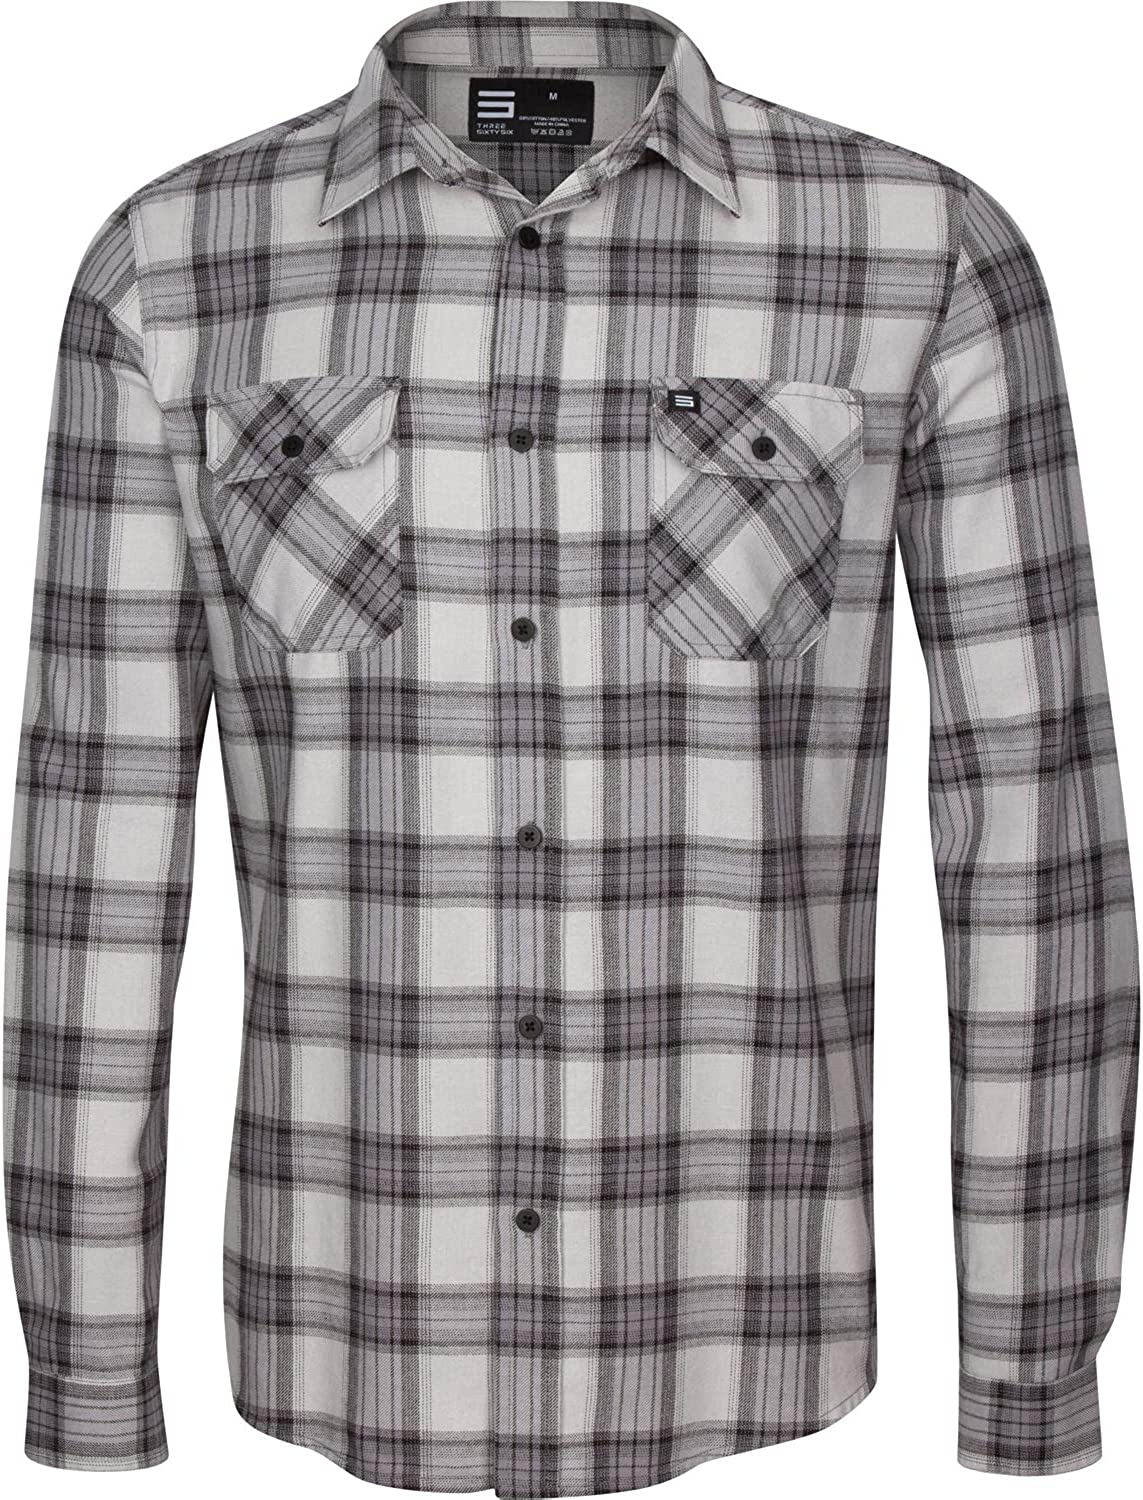 Three Sixty Six Flannel Shirt for Men - Mens Dry Fit Lightweight Fitted Flannels